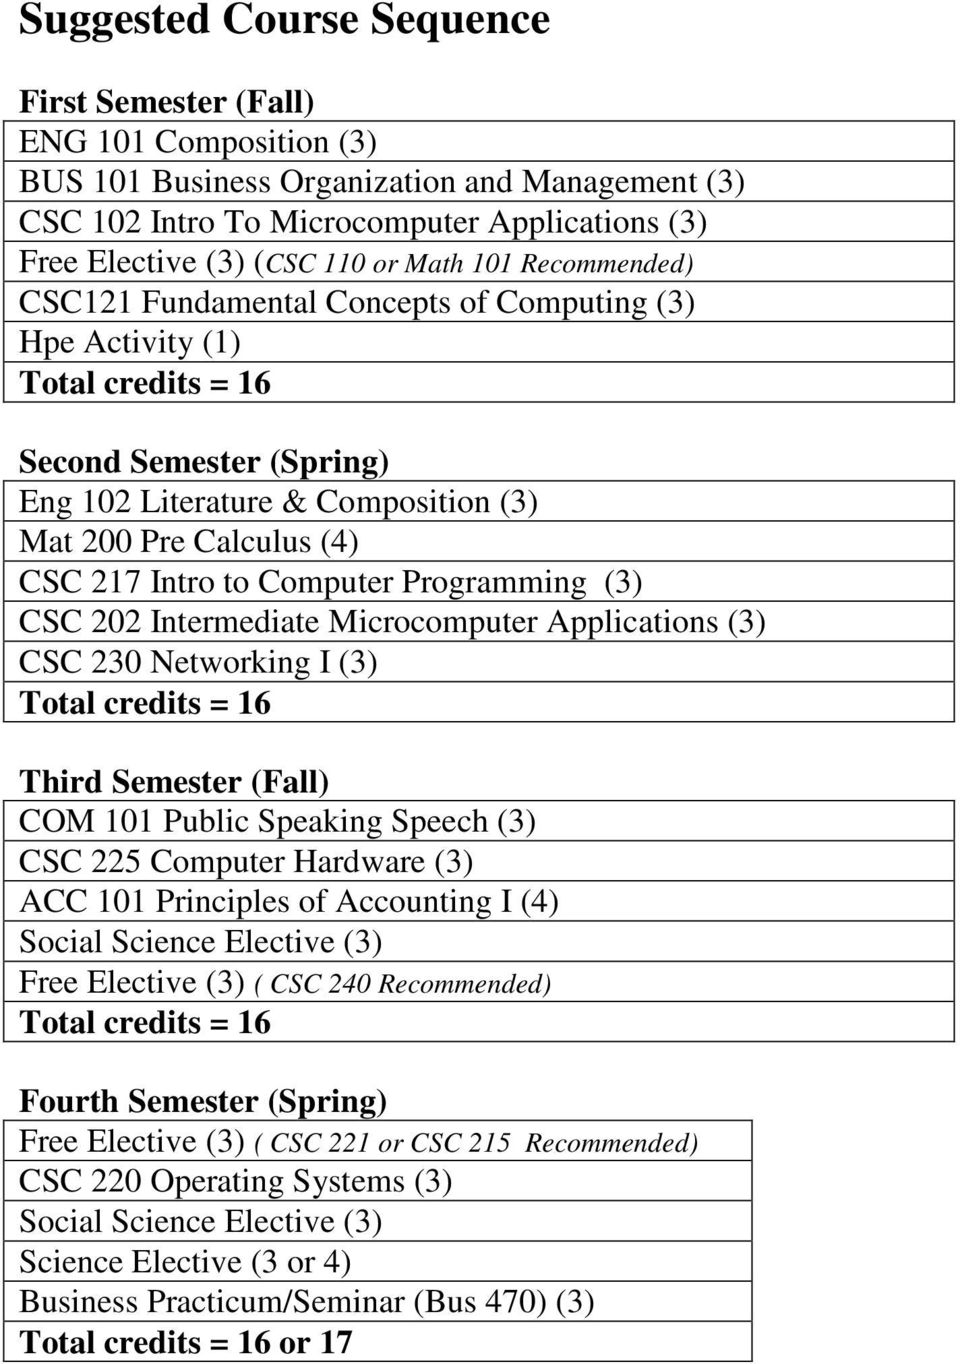 (3) CSC 202 Intermediate Microcomputer Applications (3) CSC 230 Networking I (3) Third Semester (Fall) COM 101 Public Speaking Speech (3) CSC 225 Computer Hardware (3) ACC 101 Principles of